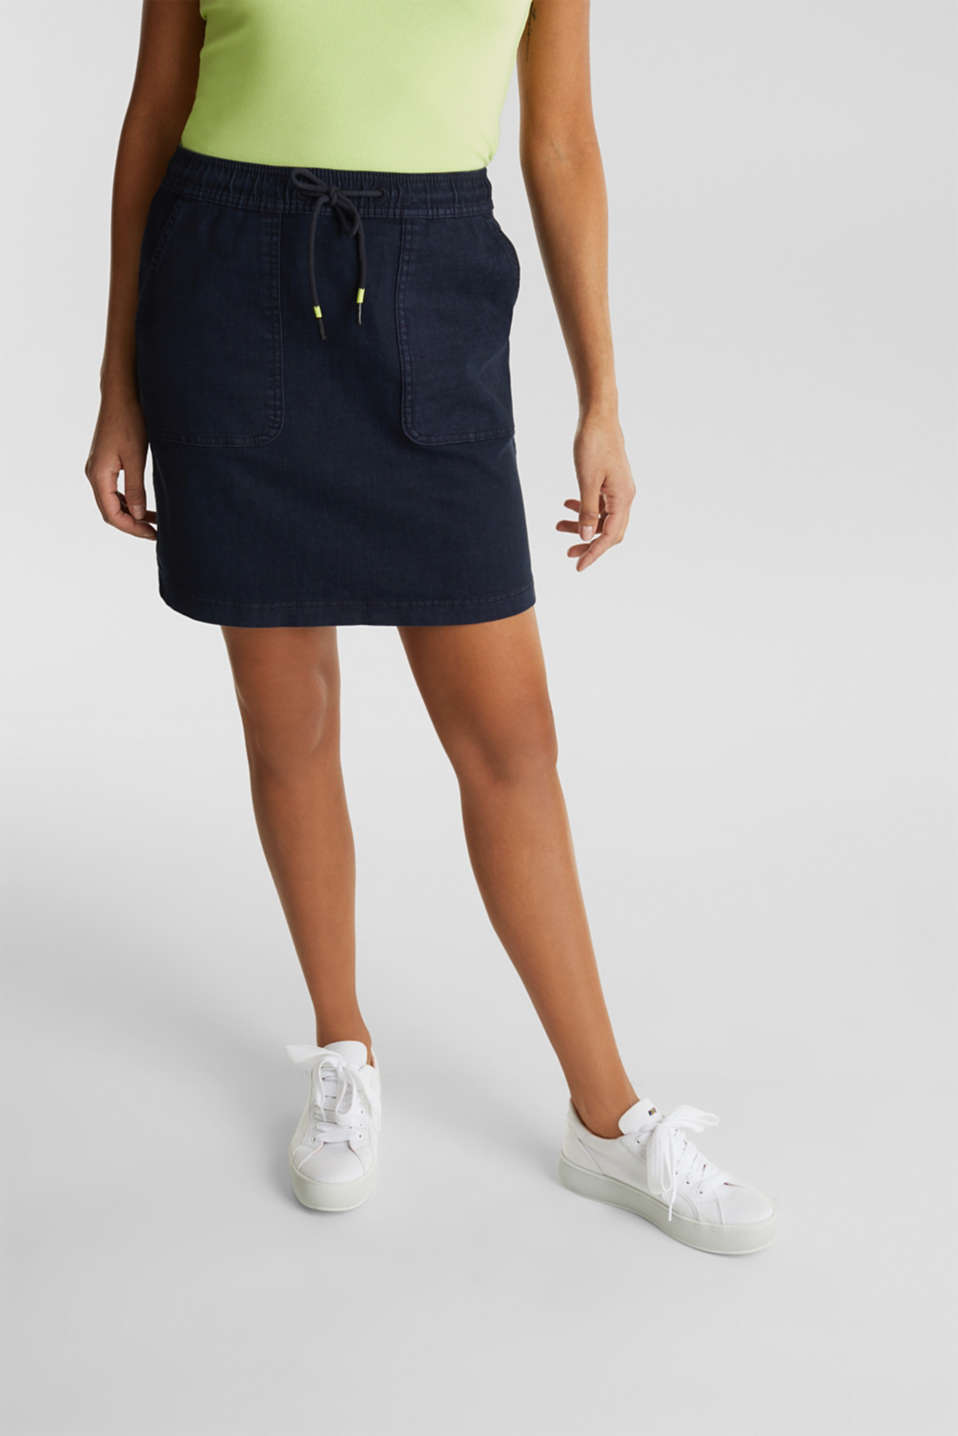 NEON skirt with sporty details, NAVY, detail image number 6